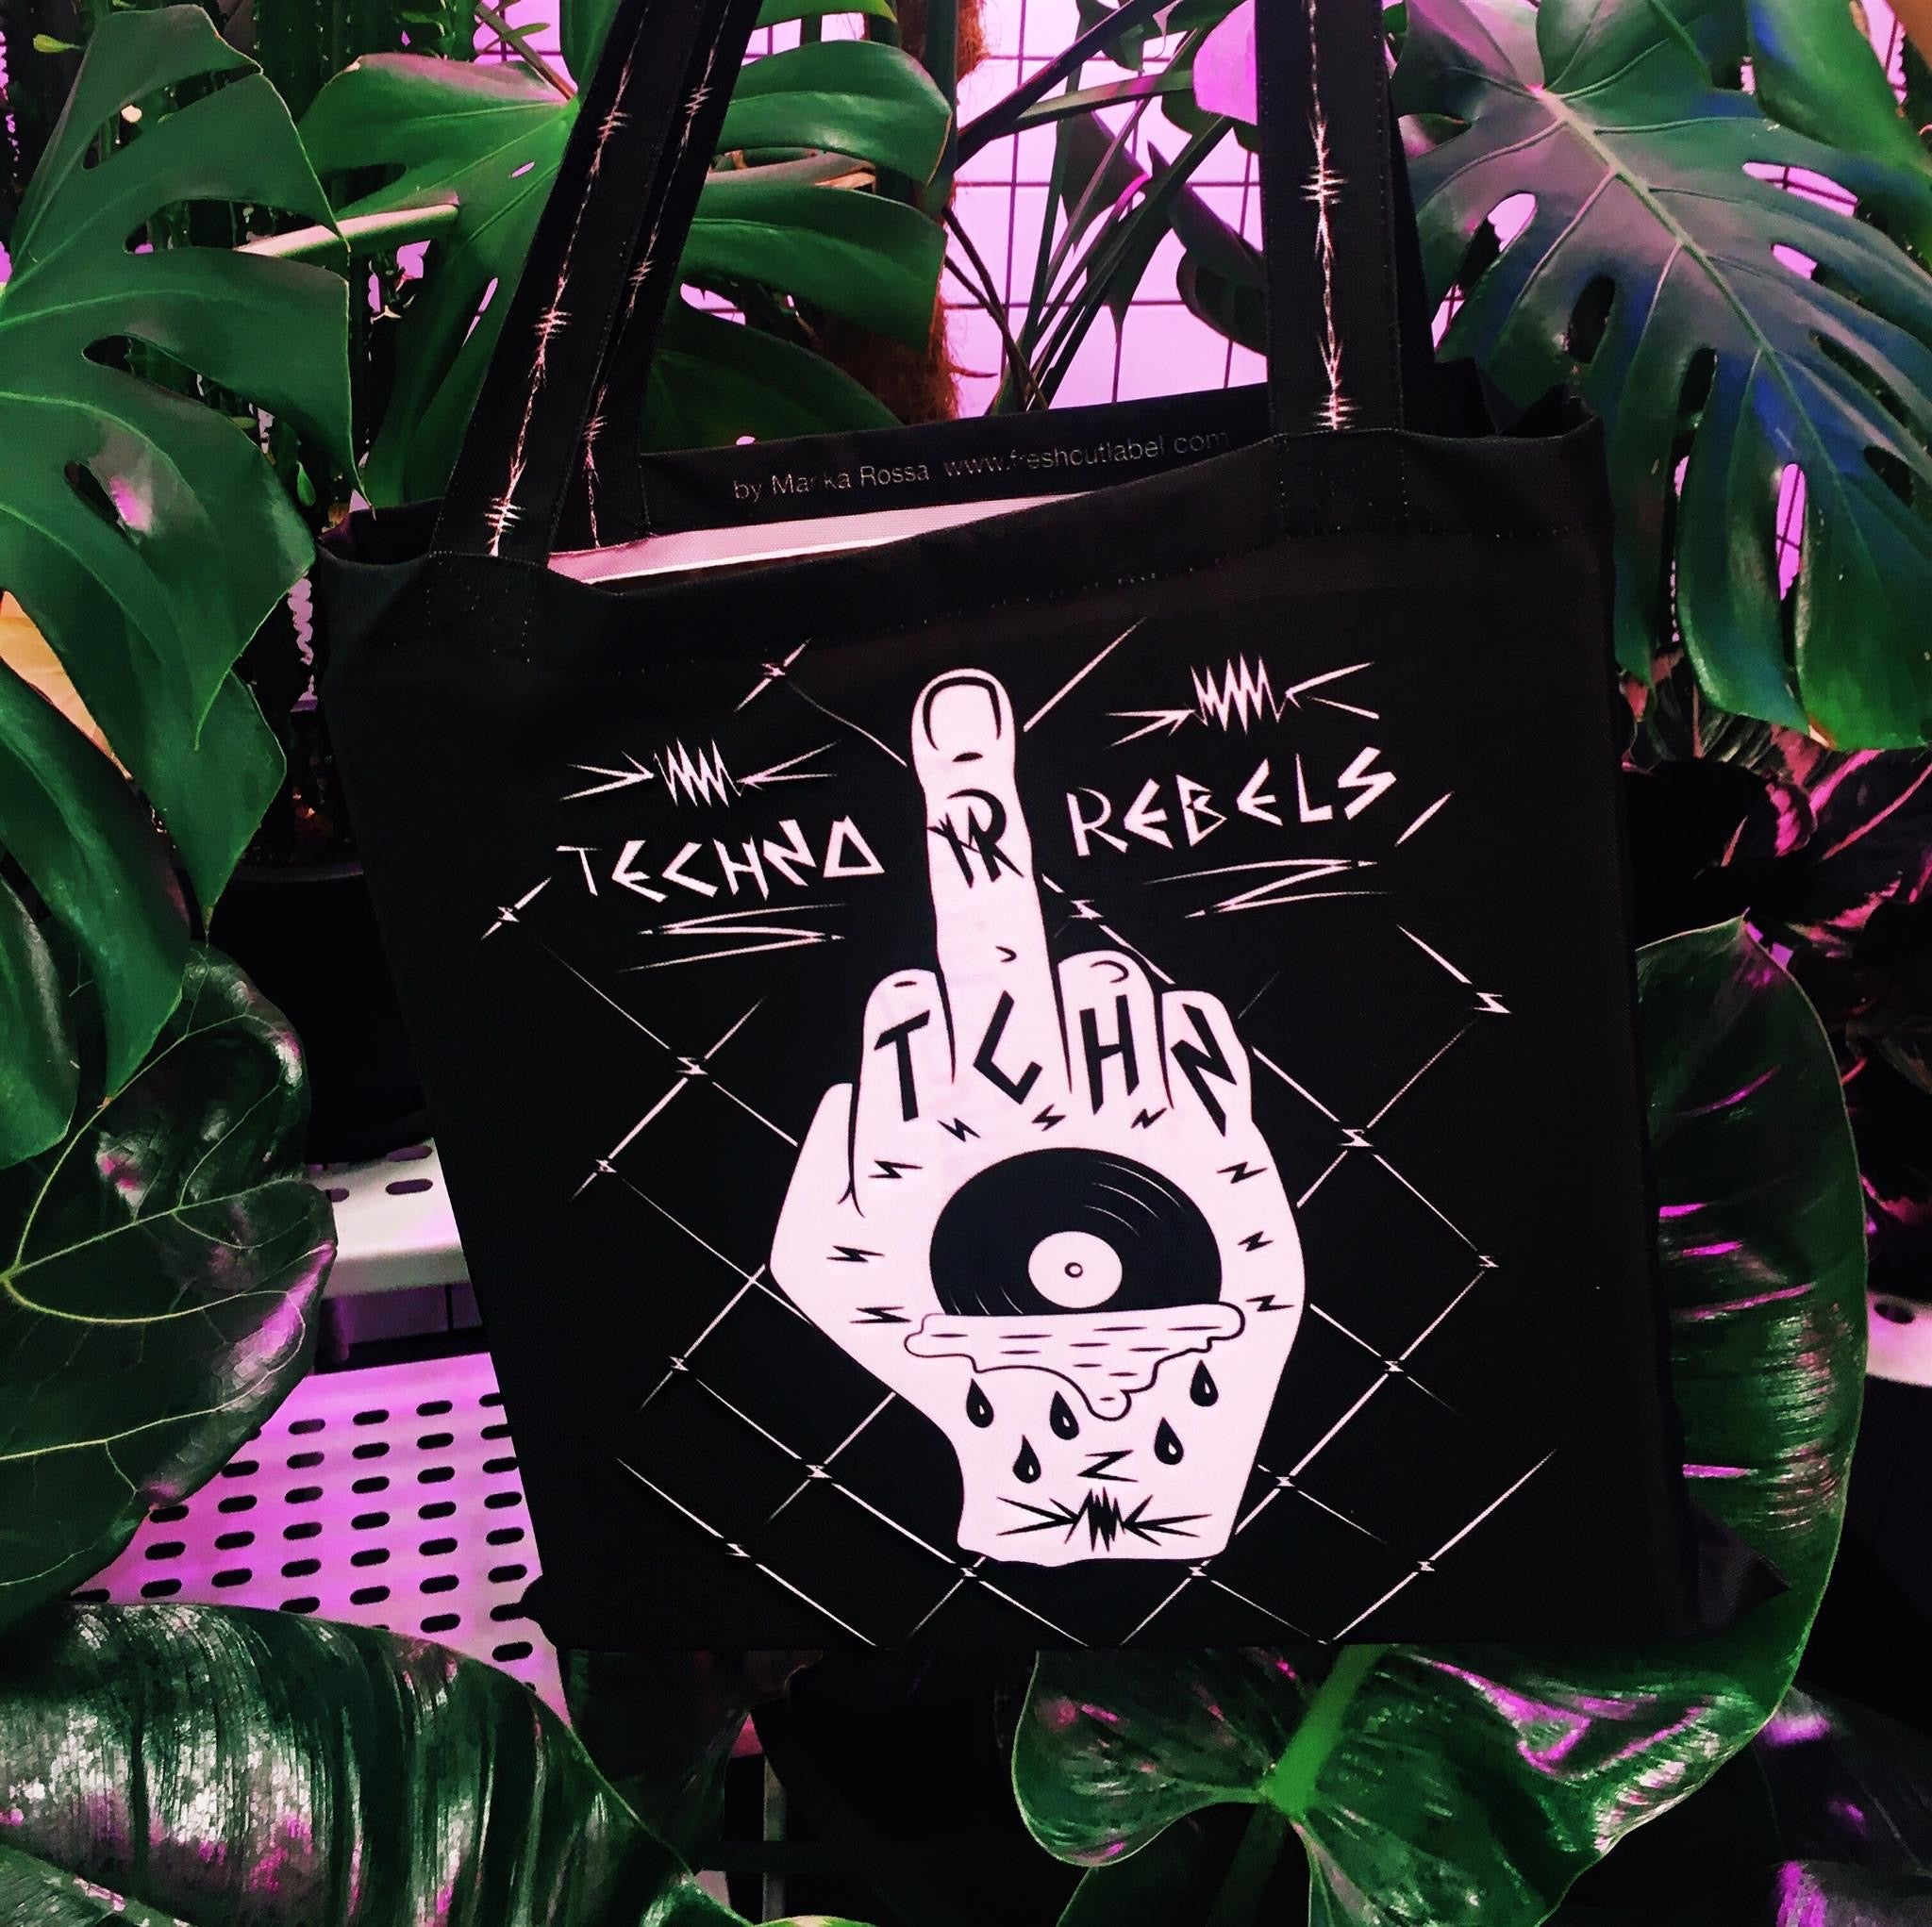 Techno Rebels Vinyl shopping bags